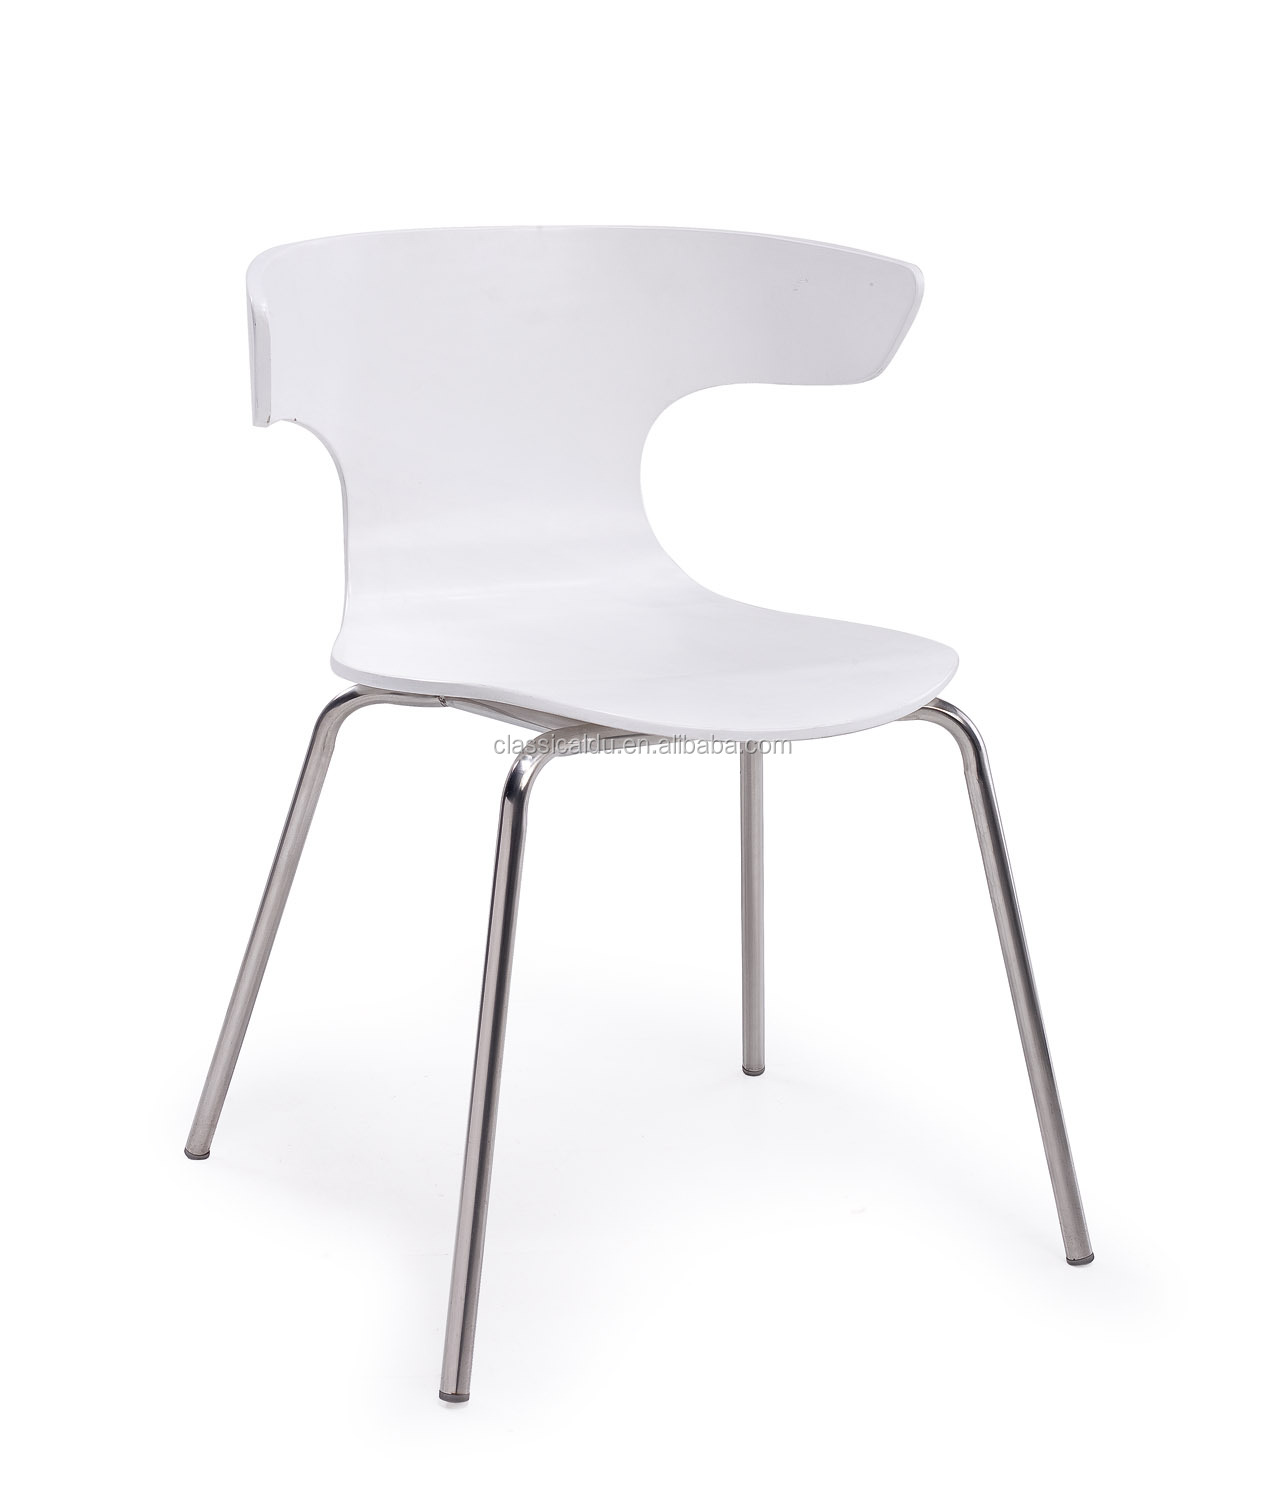 Cheap Dining Chairs For Sale Restaurant Chairs For Sale Used Cheap Restaurant Tables